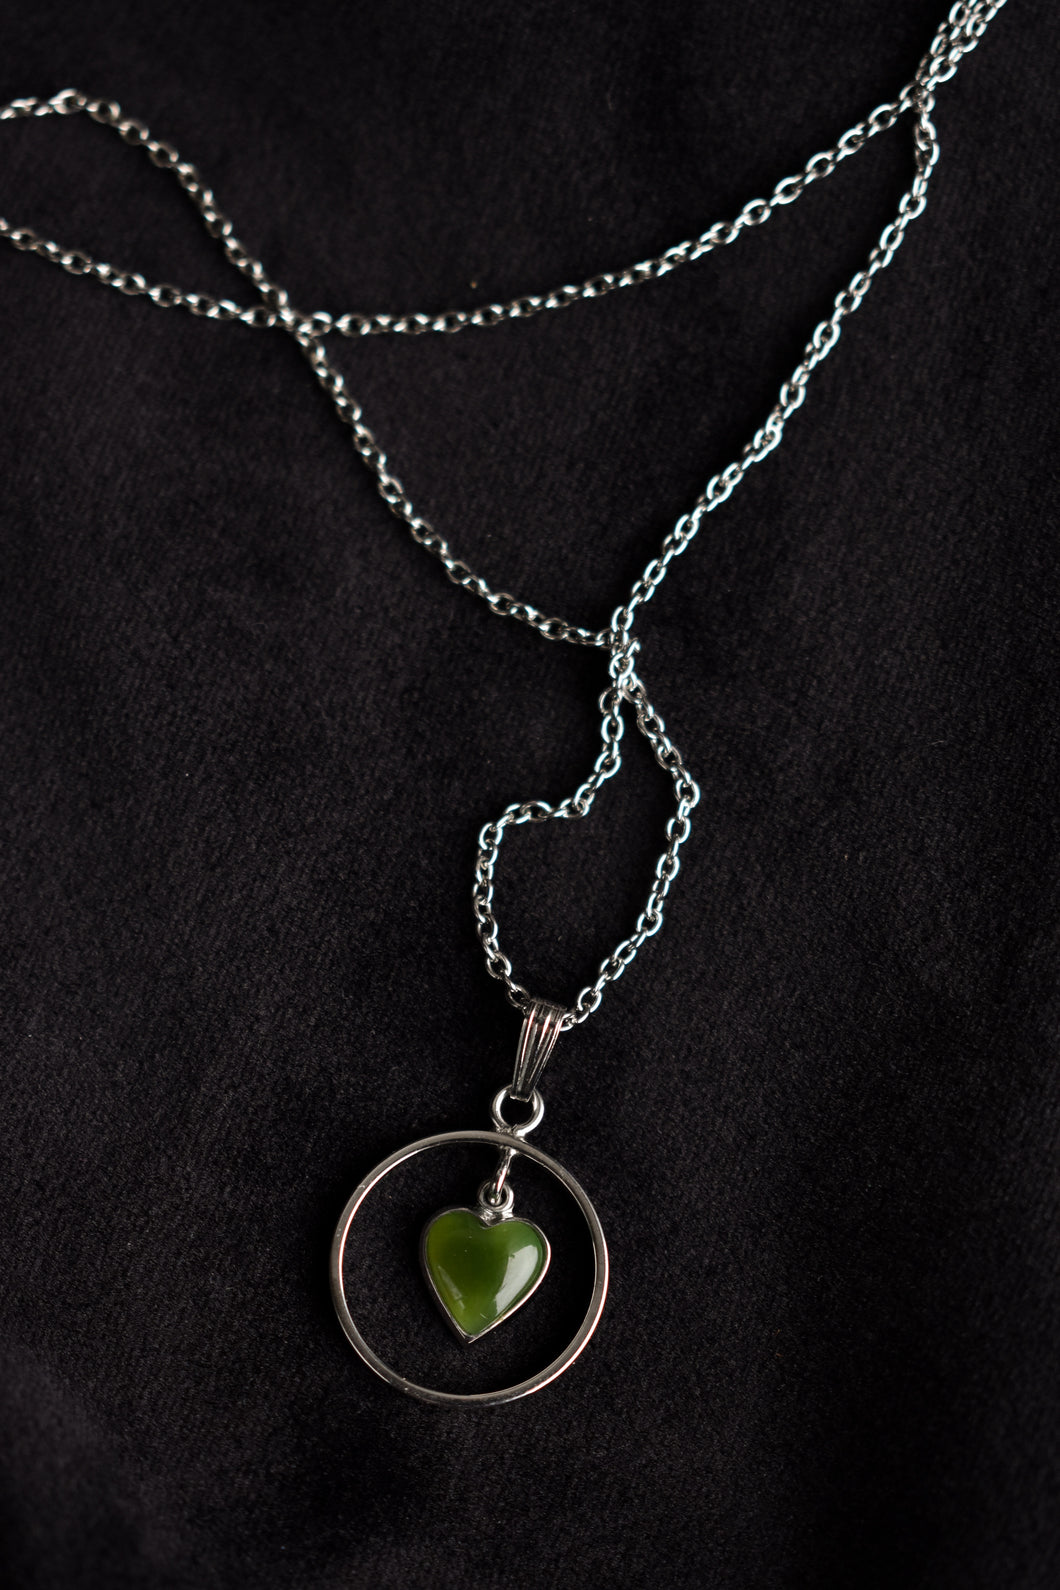 Heart in circle - possibly greenstone necklace